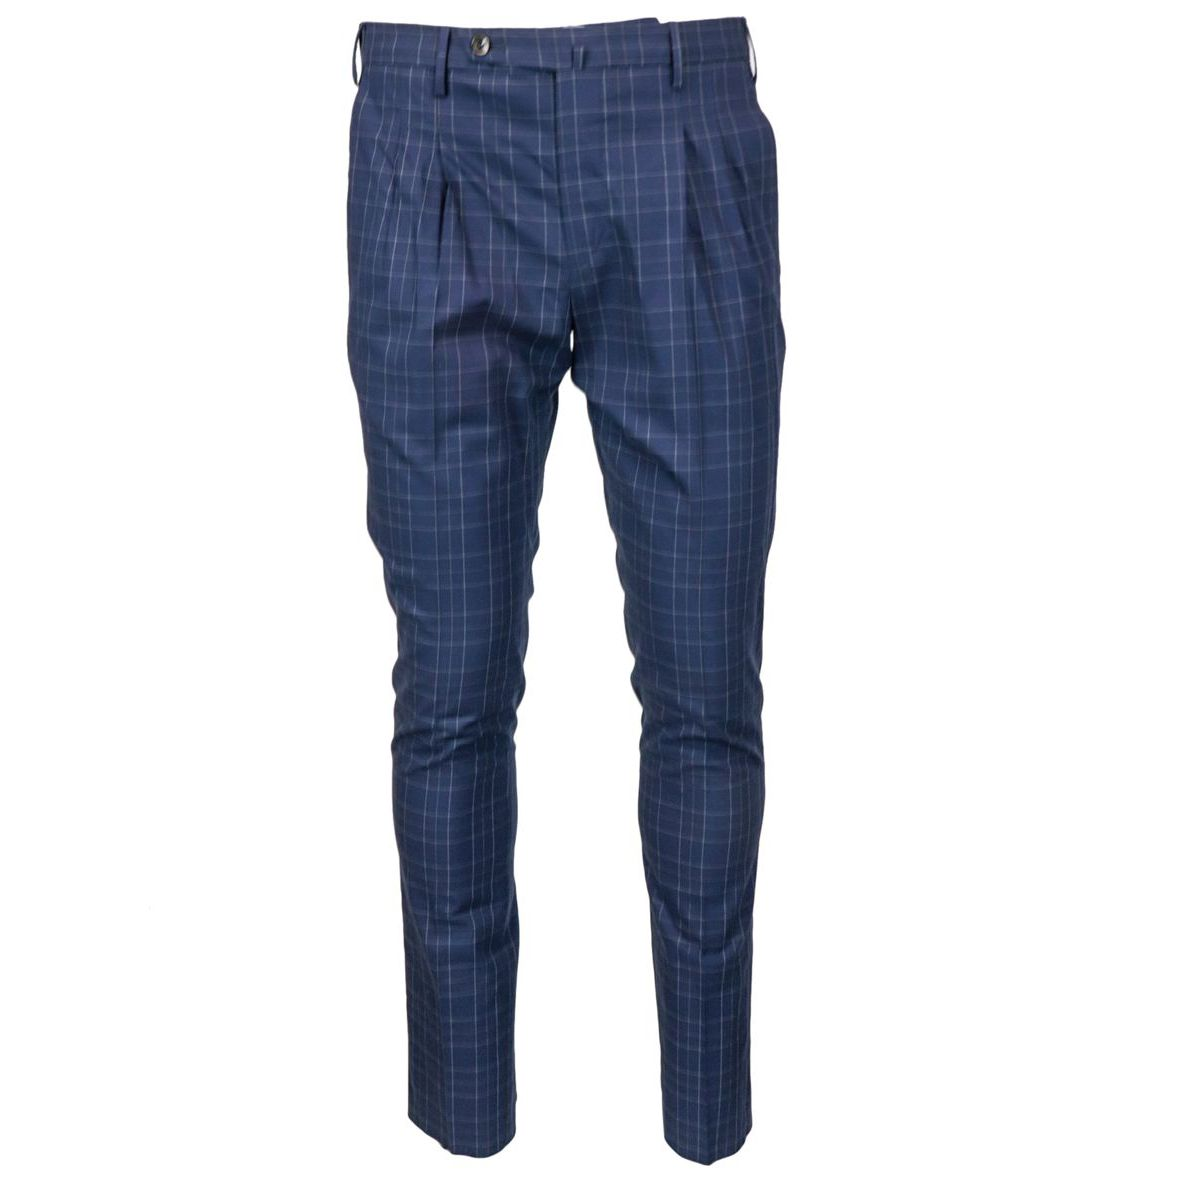 Trousers with pleats in madras patterned cotton Blue PT TORINO